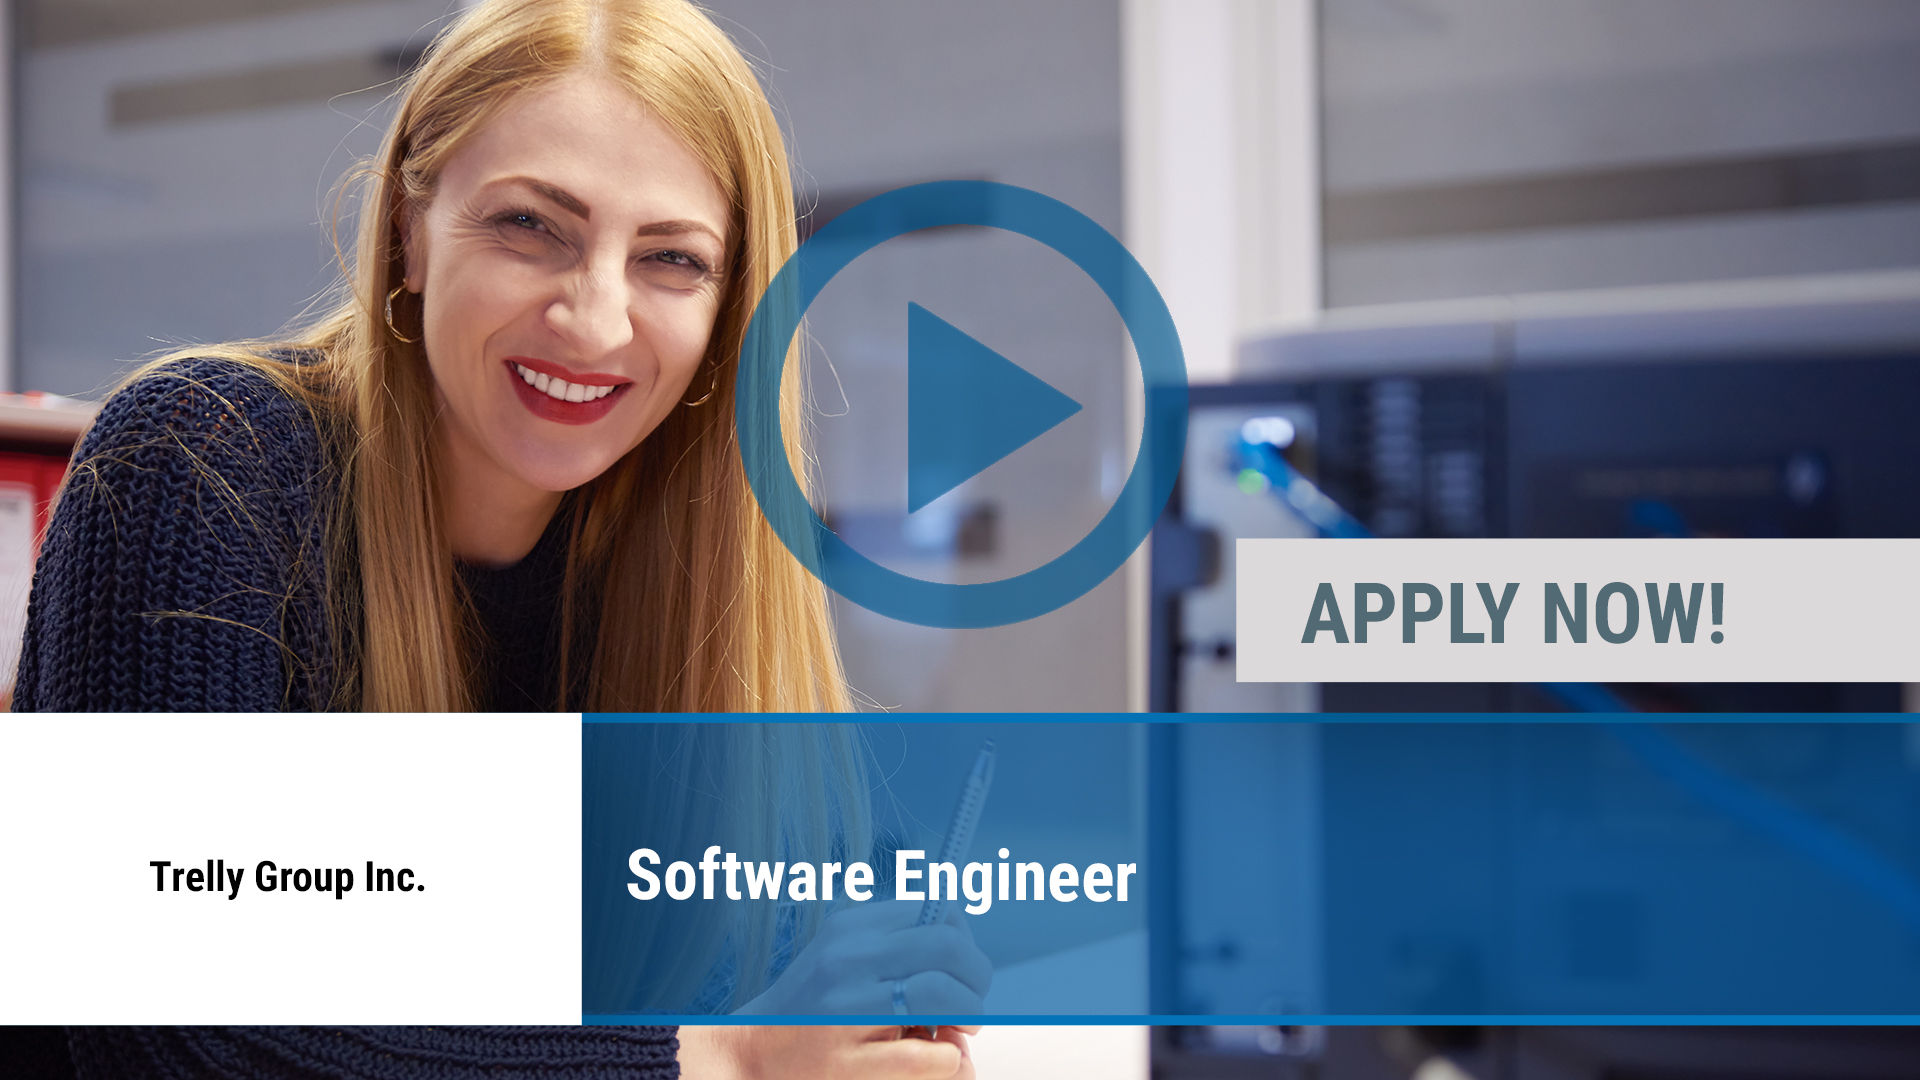 Watch our careers video for available job opening Software Engineer in Dallas, TX